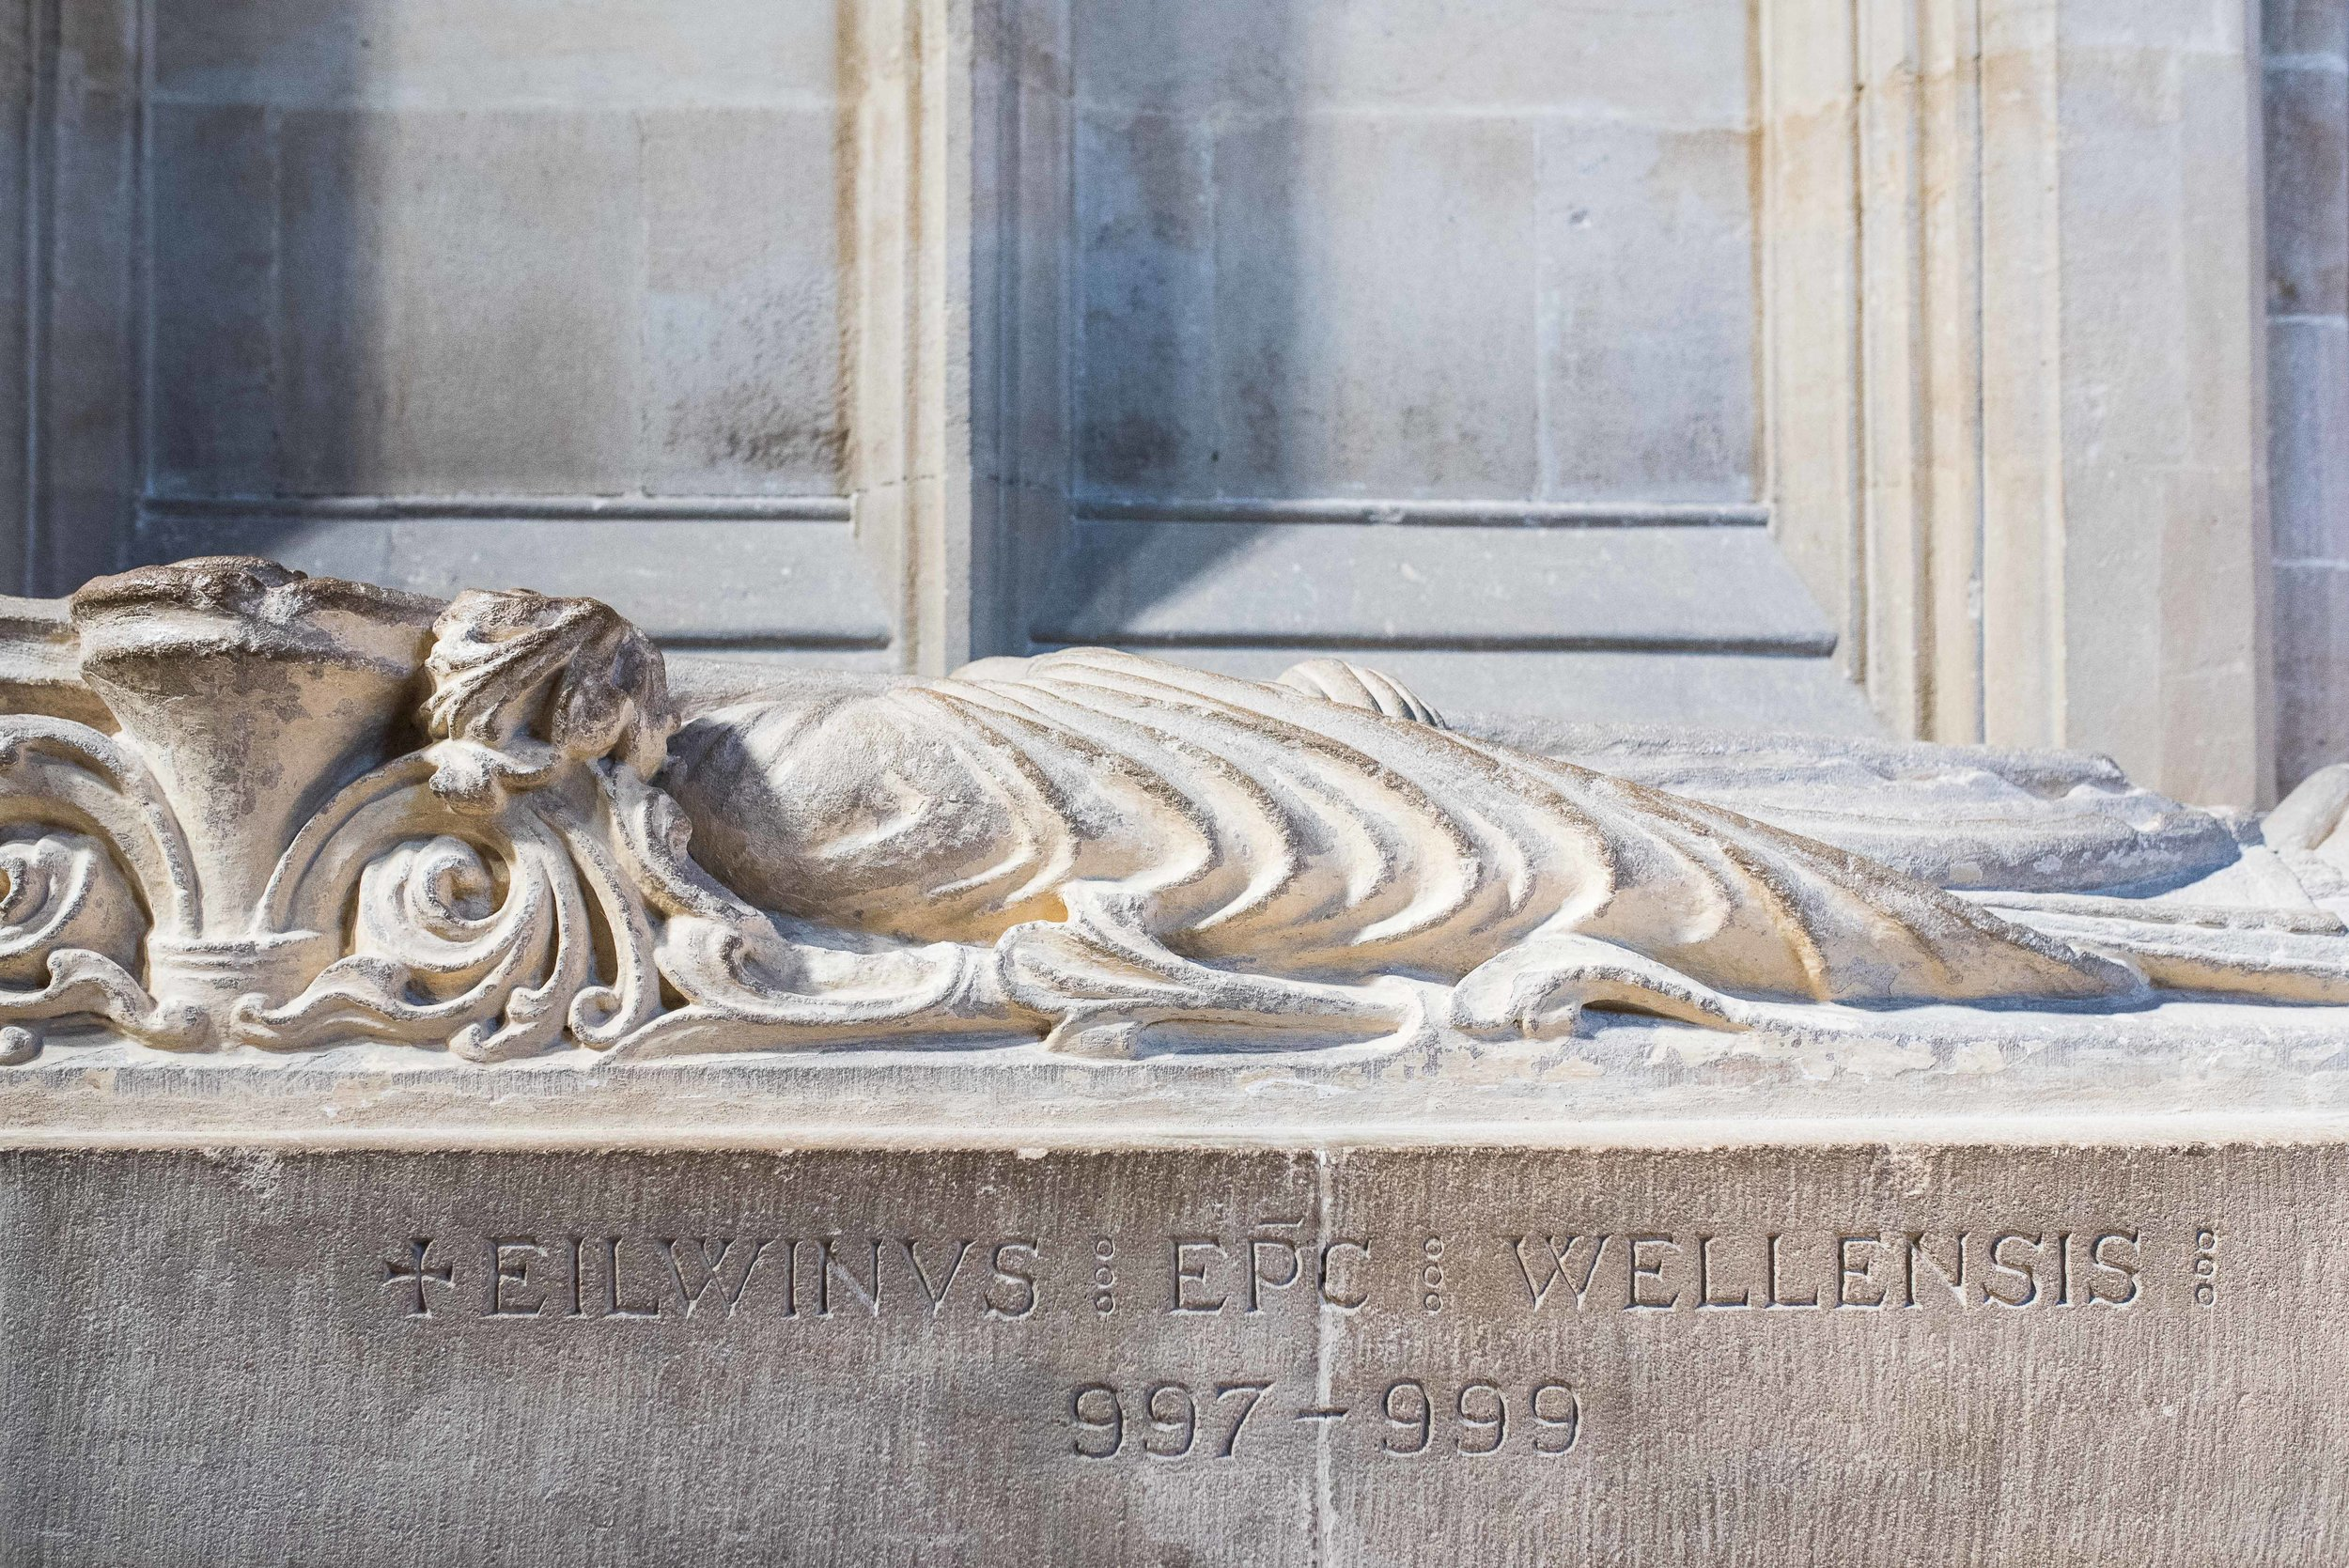 The dates on this particular tomb caused both Mom and me to pause.